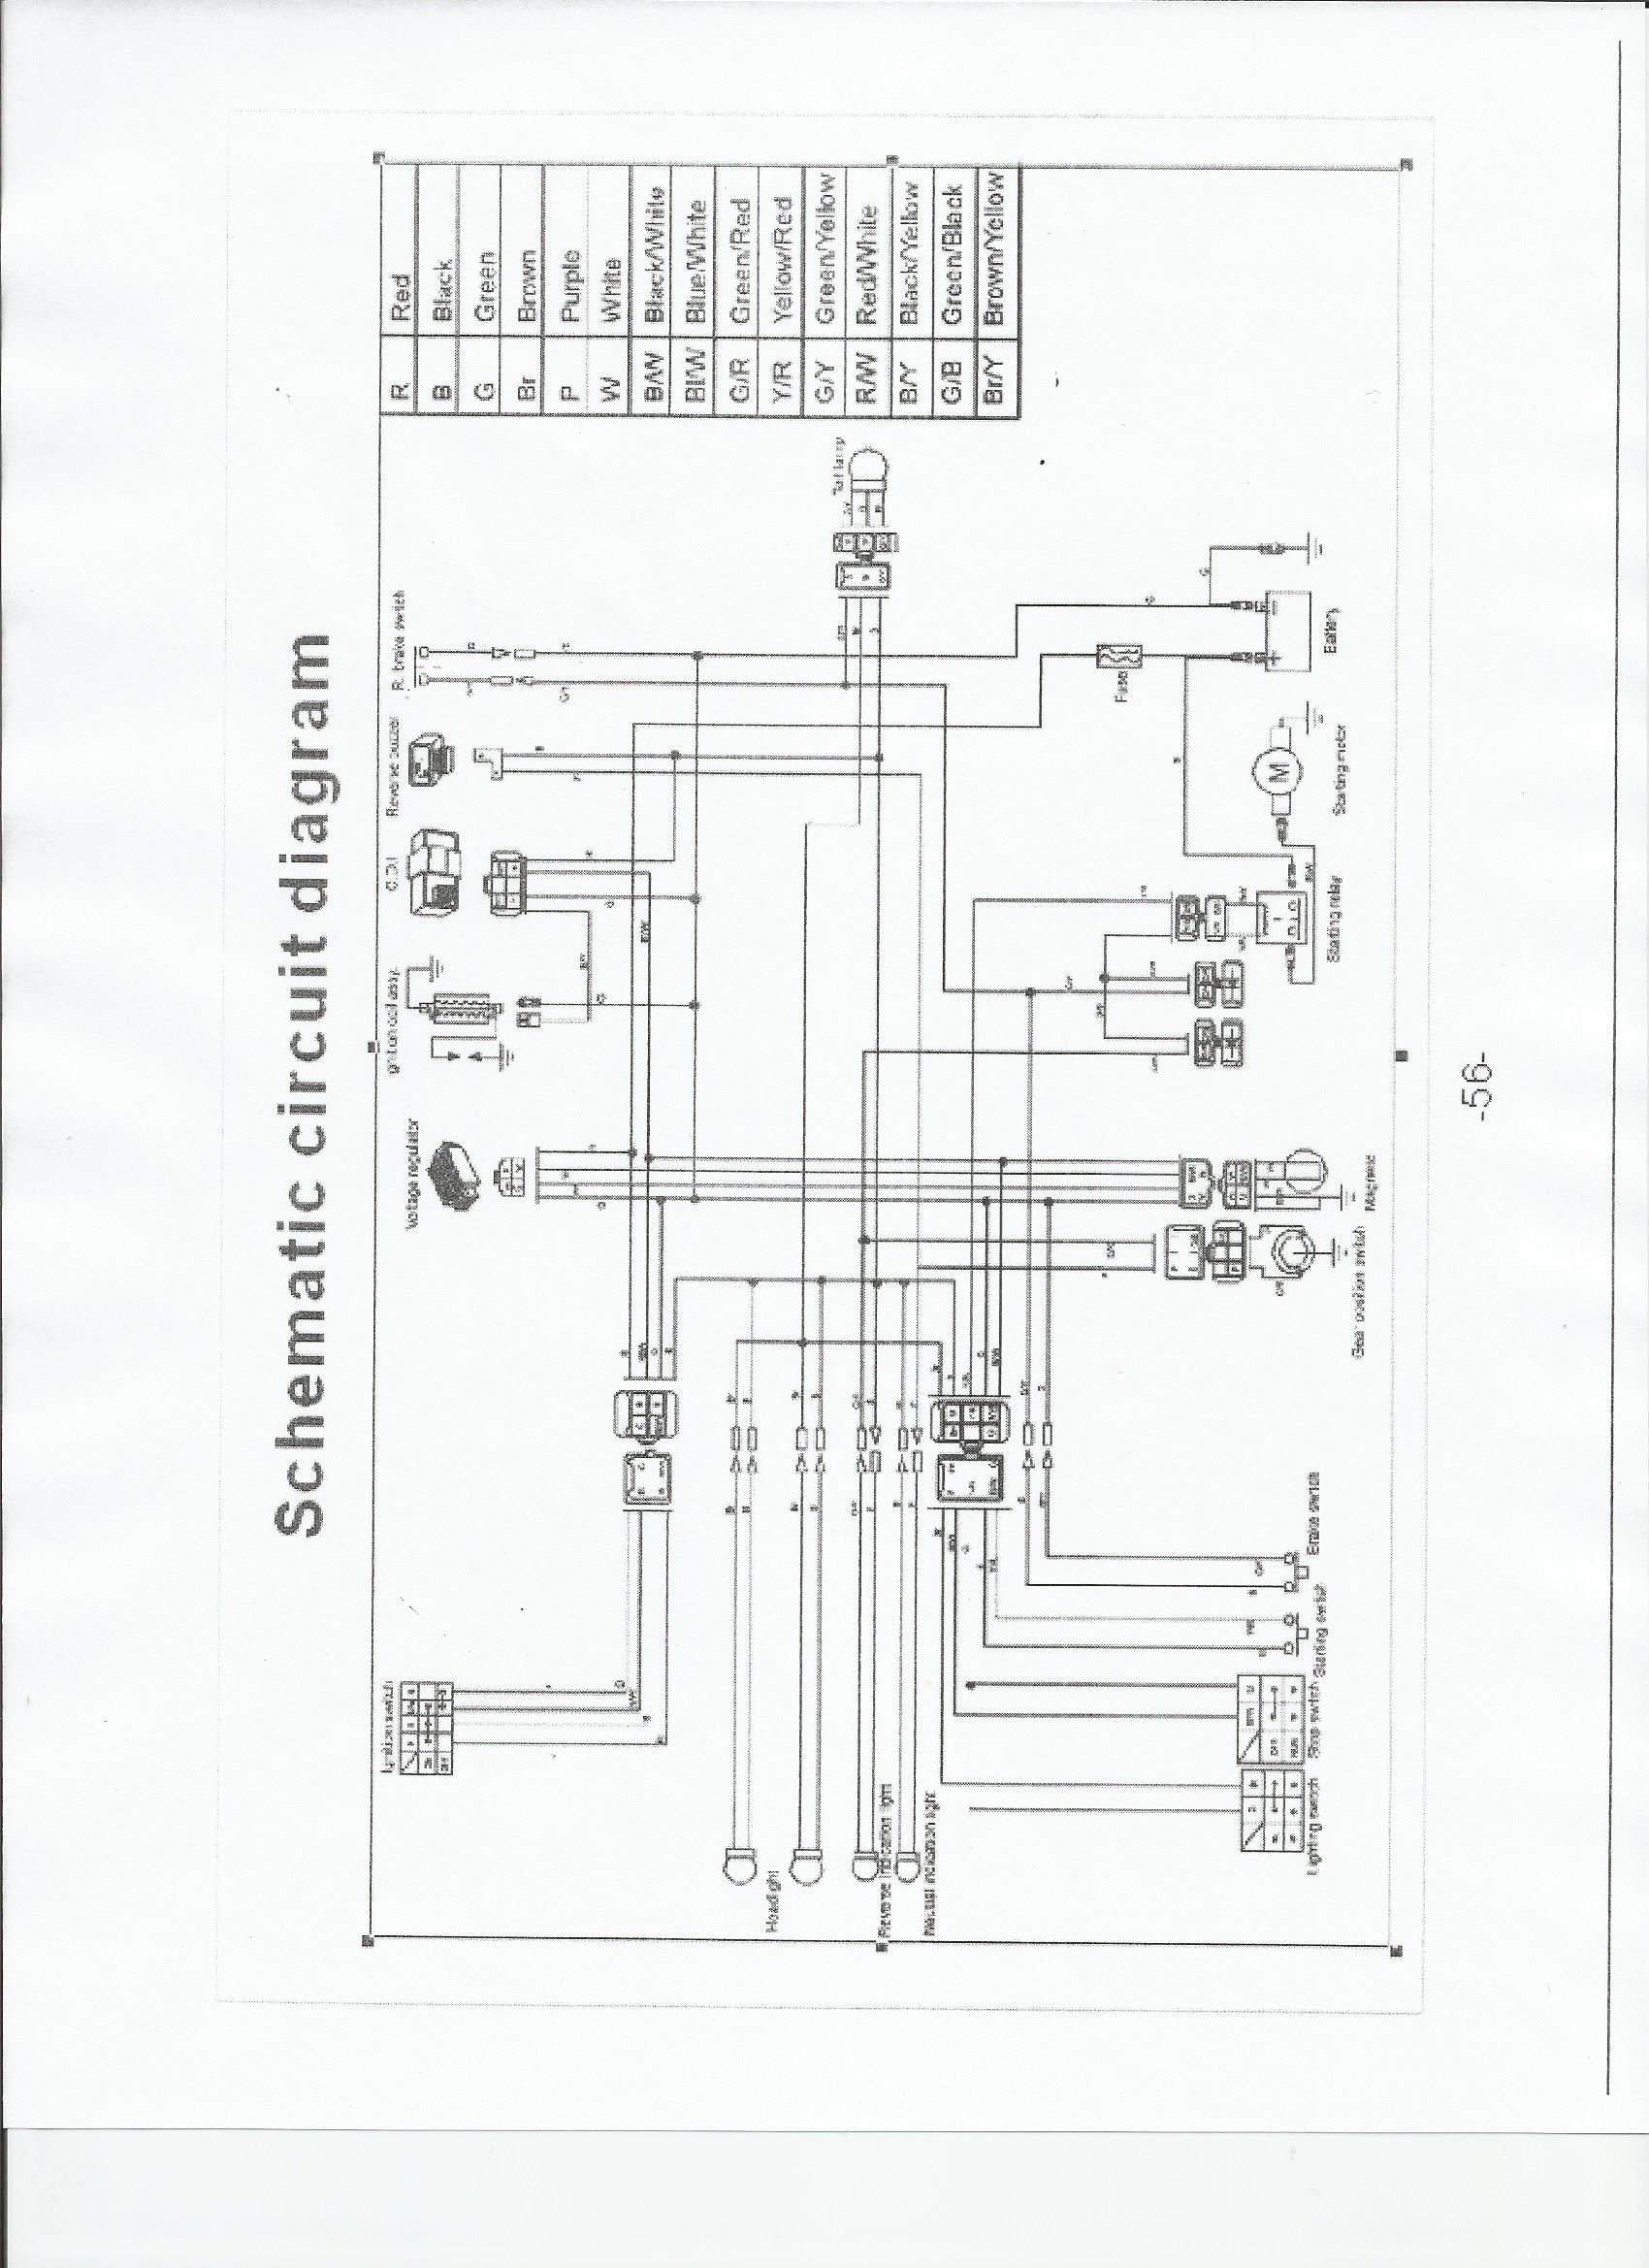 tao tao wiring schematic taotao mini and youth atv wiring schematic familygokarts support chinese atv wiring diagrams at cos-gaming.co